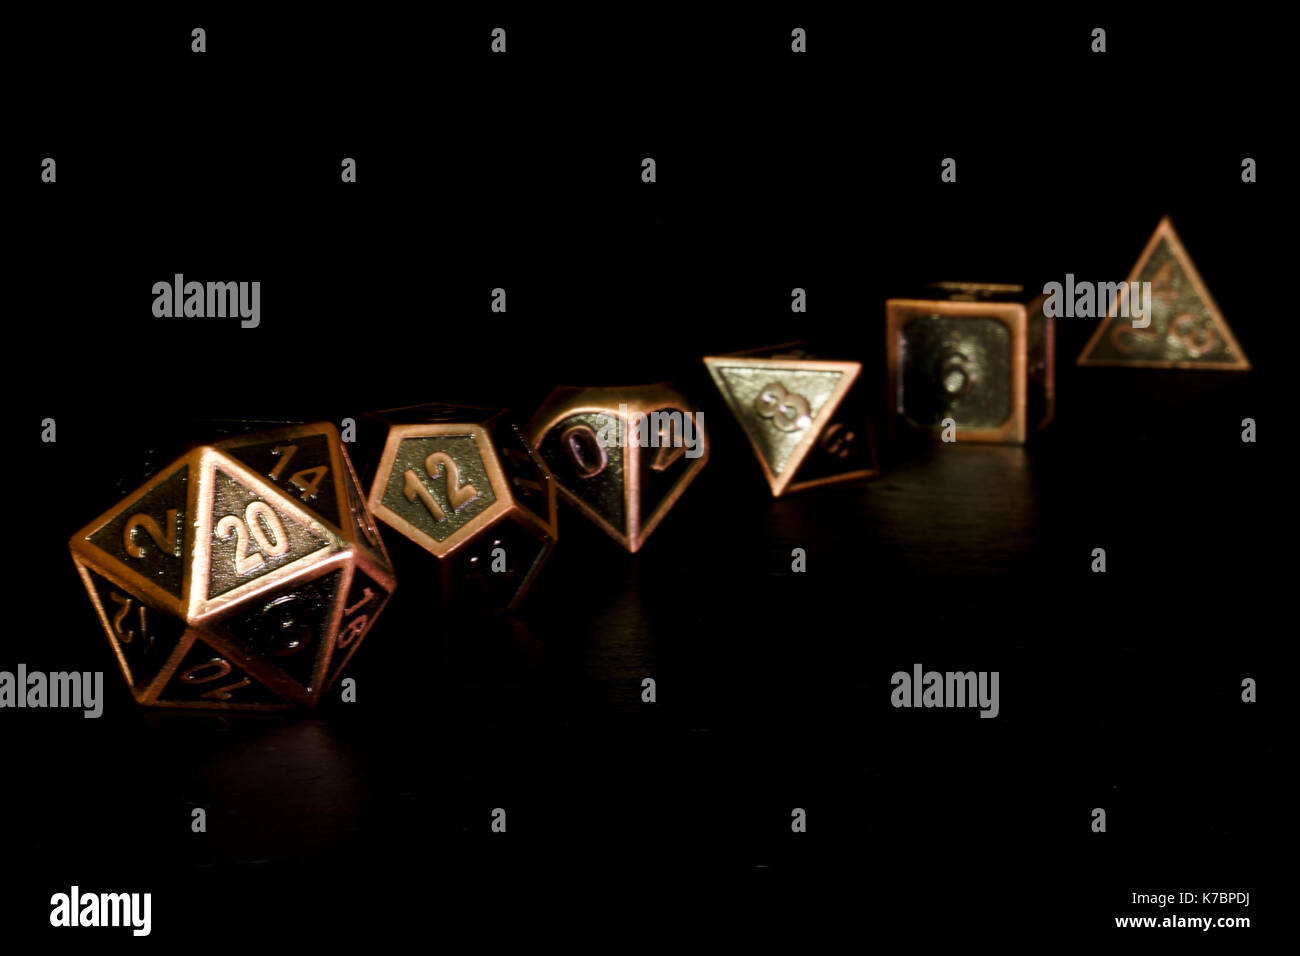 A set of polyhedral dice on a slate surface. These dice are used for role playing games such as Dungeons & Dragons. Stock Photo